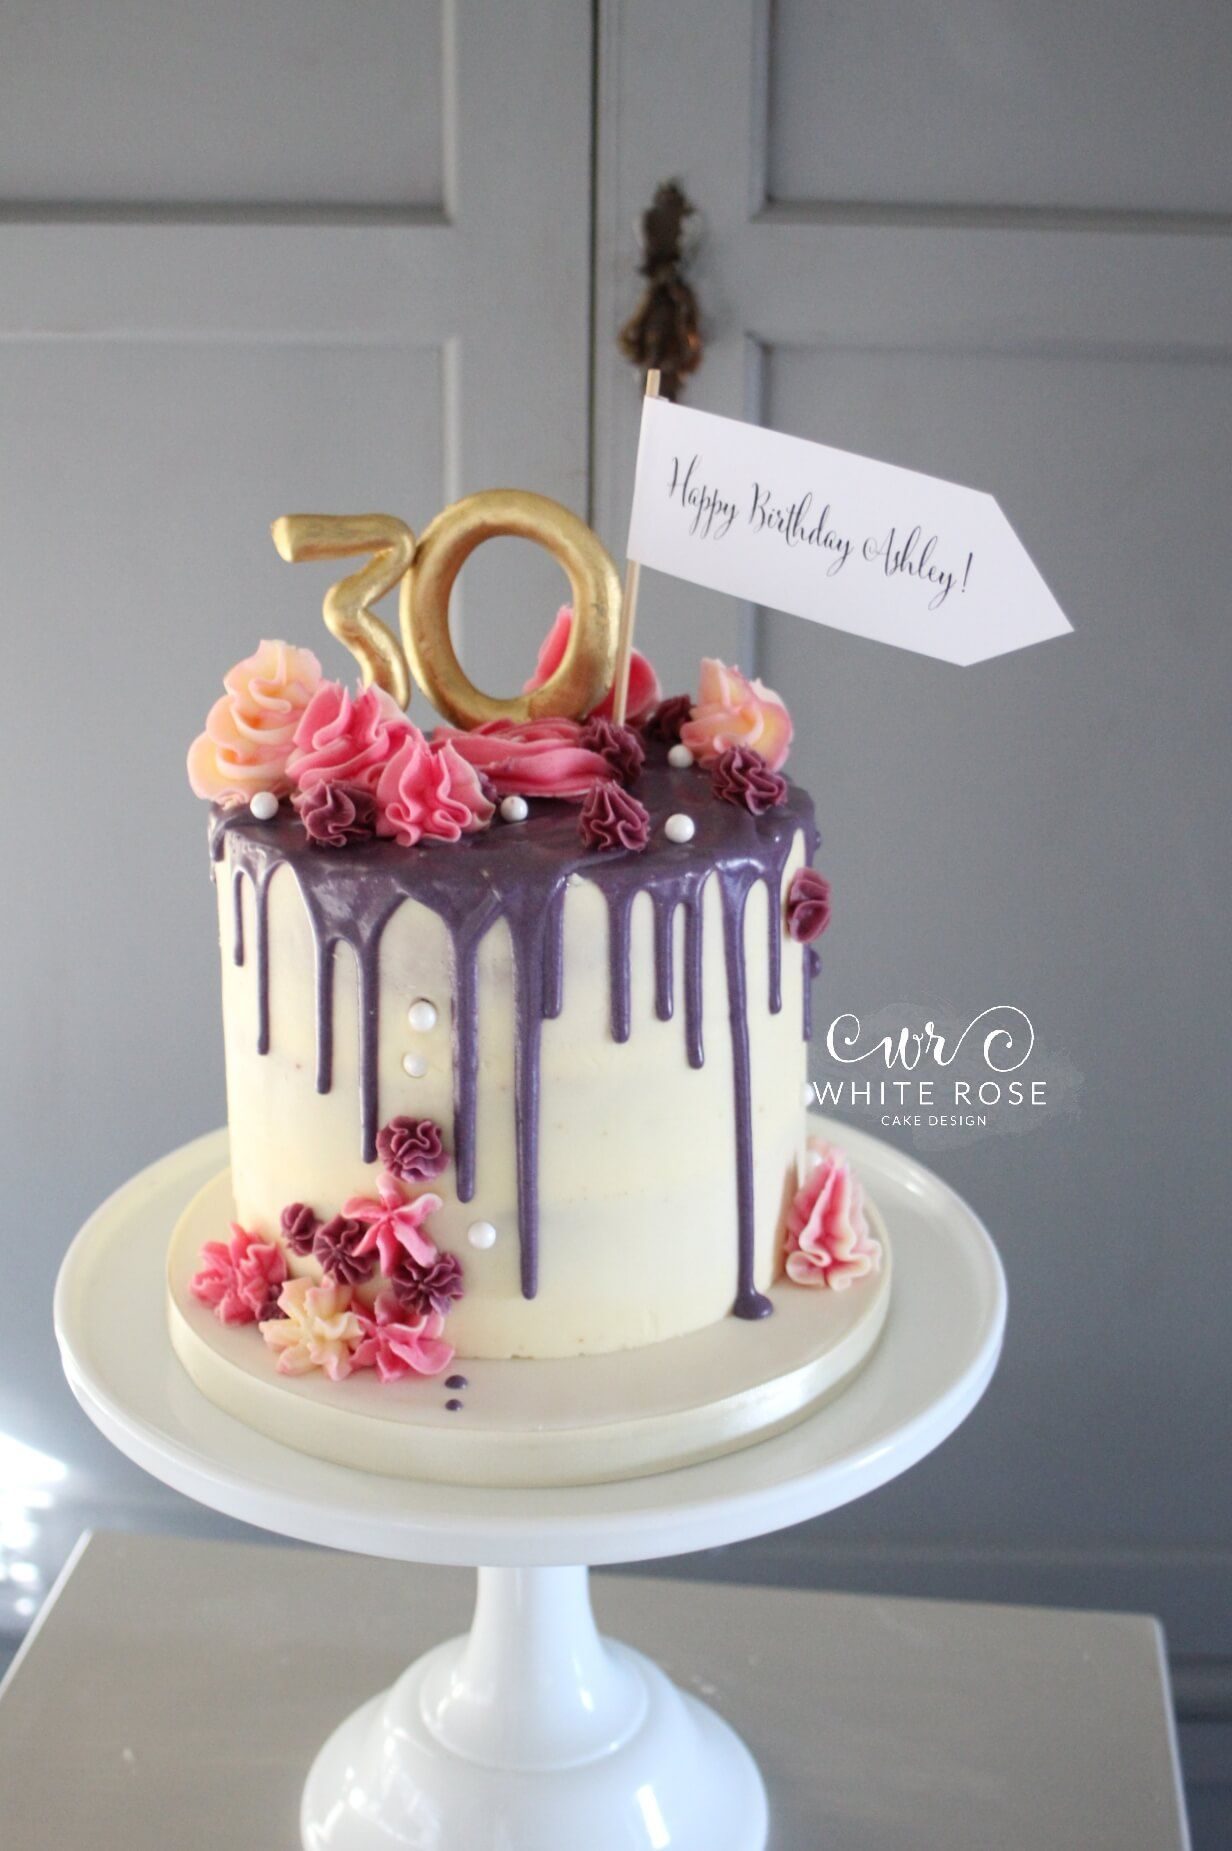 Kuchen Deko Gold 30th Drippy Birthday Cake By White Rose Cake Design 2